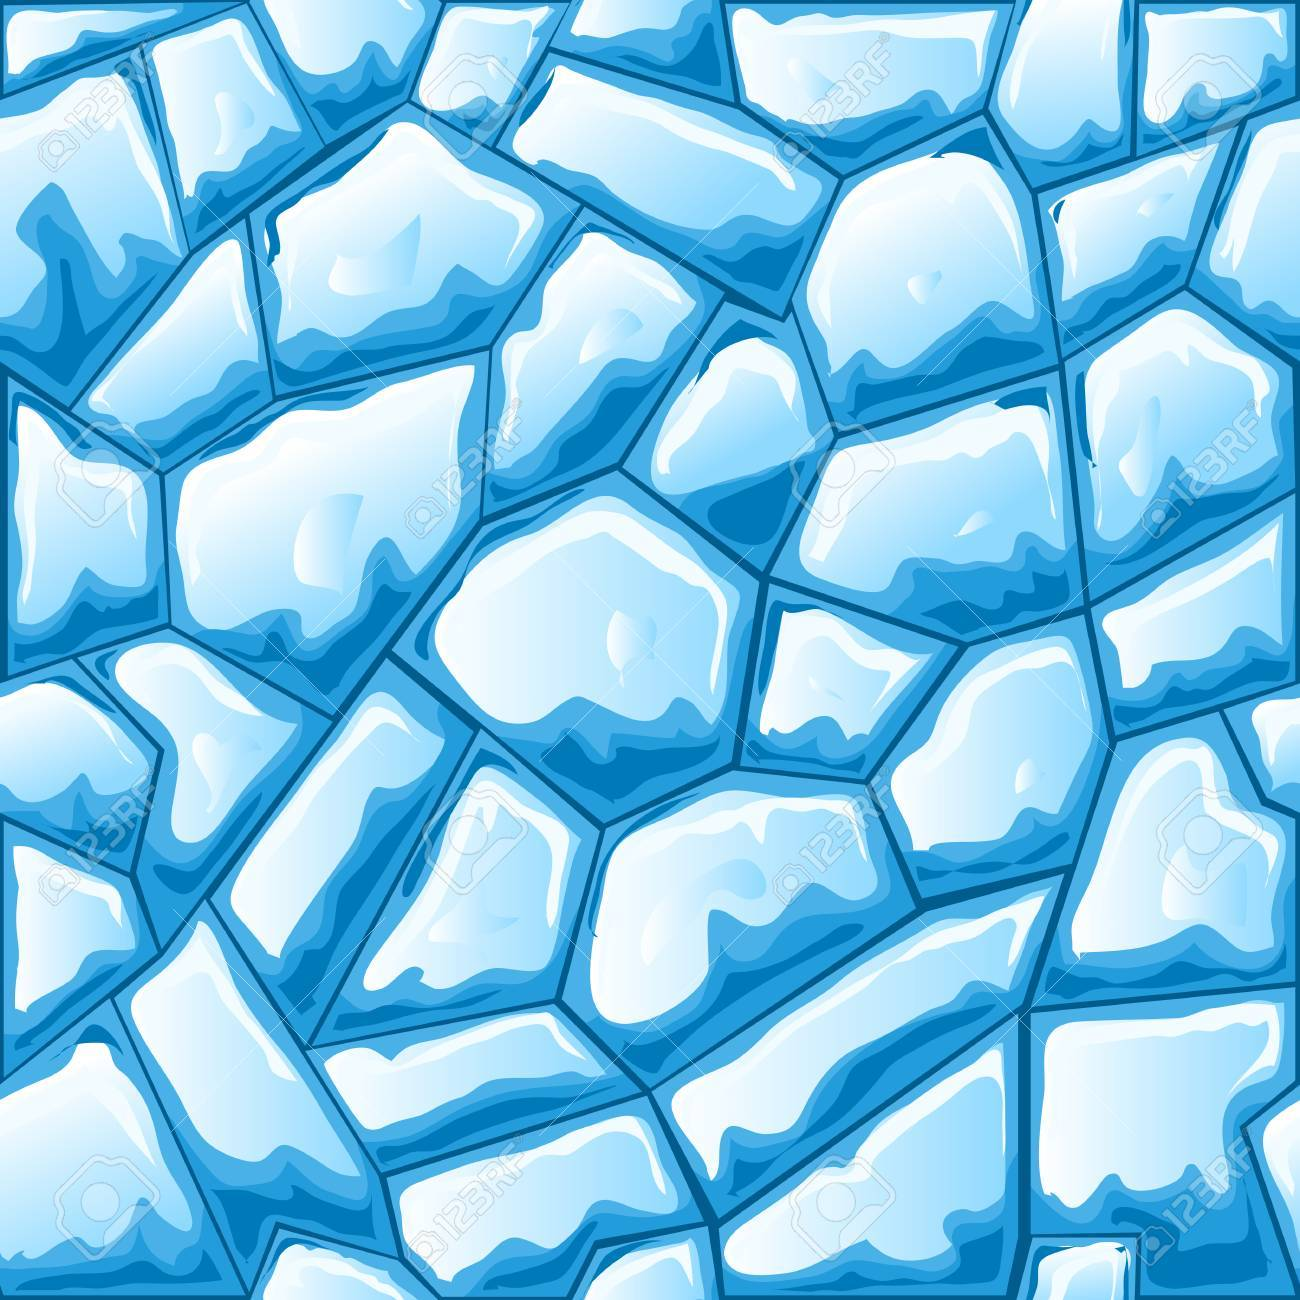 blue ice brick seamless pattern royalty free cliparts vectors and stock illustration image 52566700 123rf com